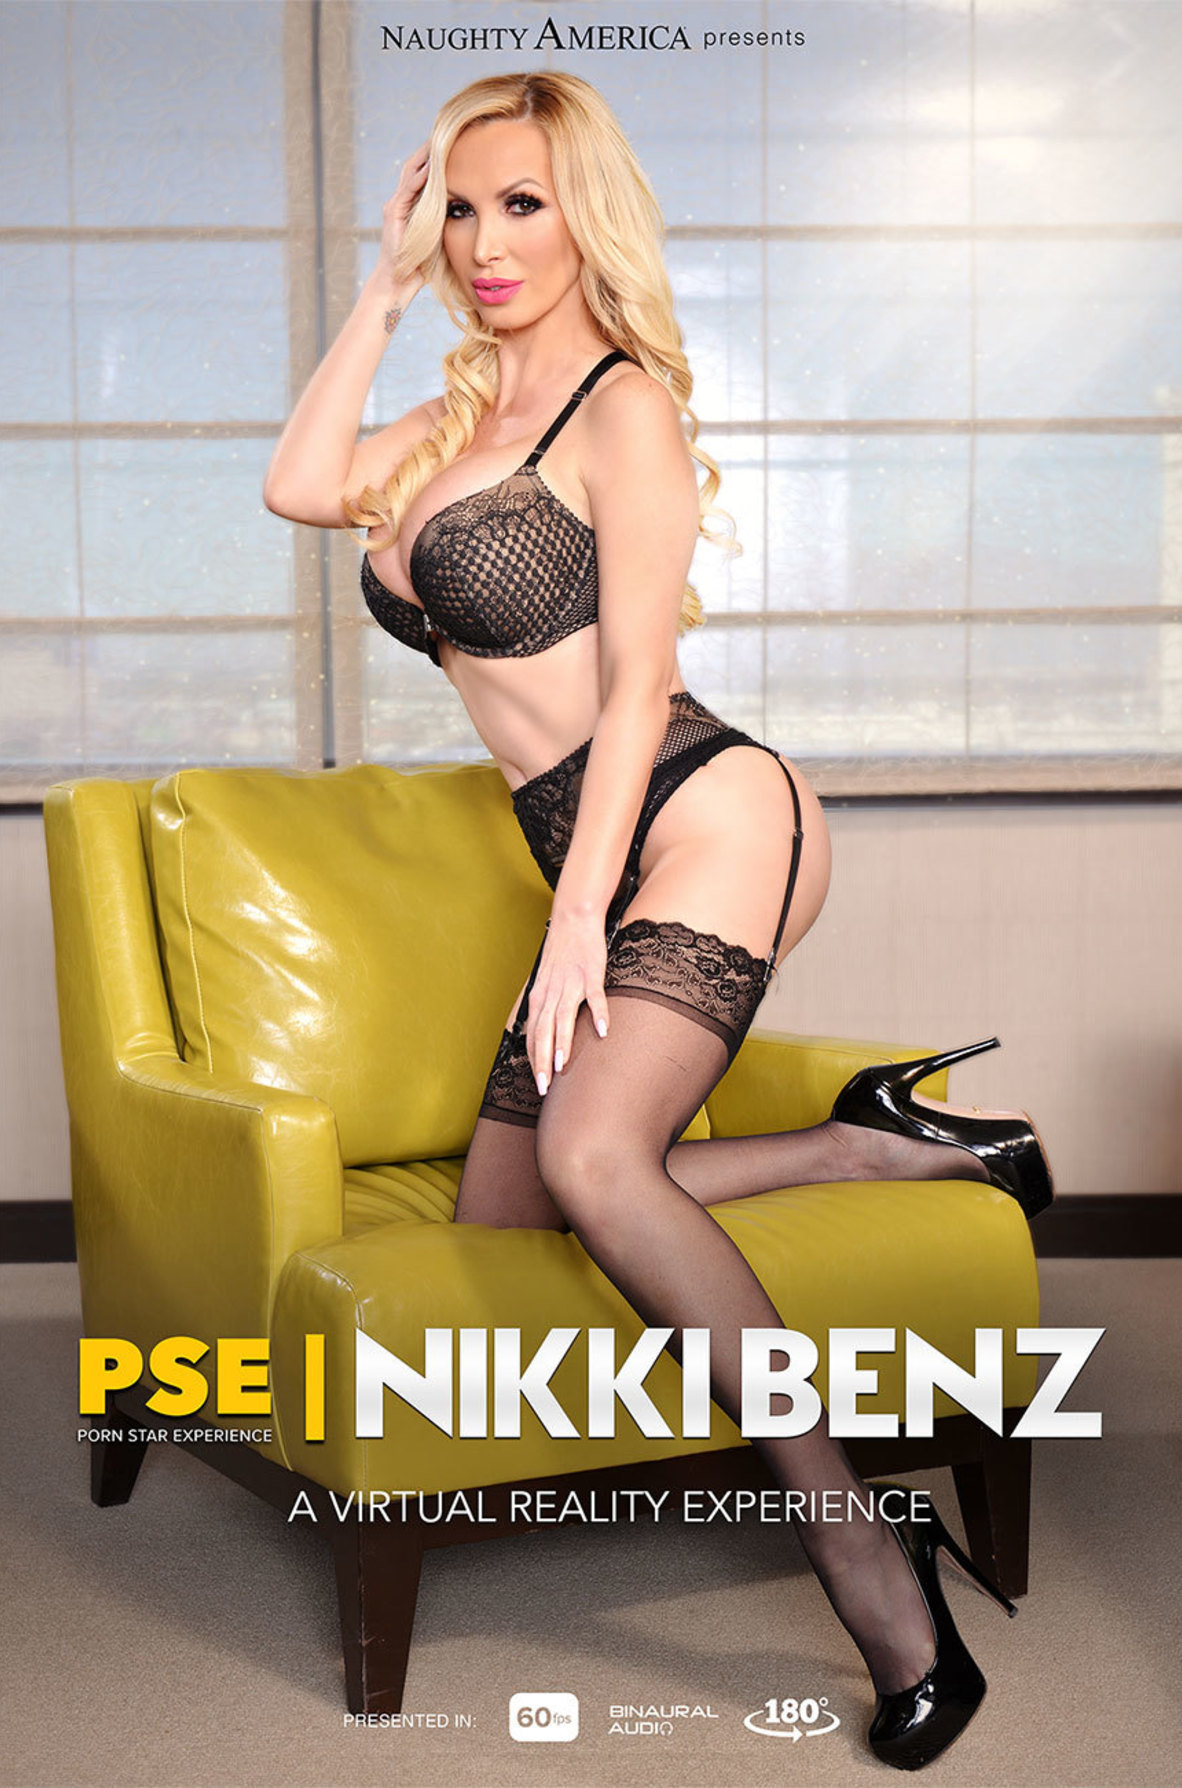 Watch Nikki Benz and Dylan Snow VR video in Naughty America